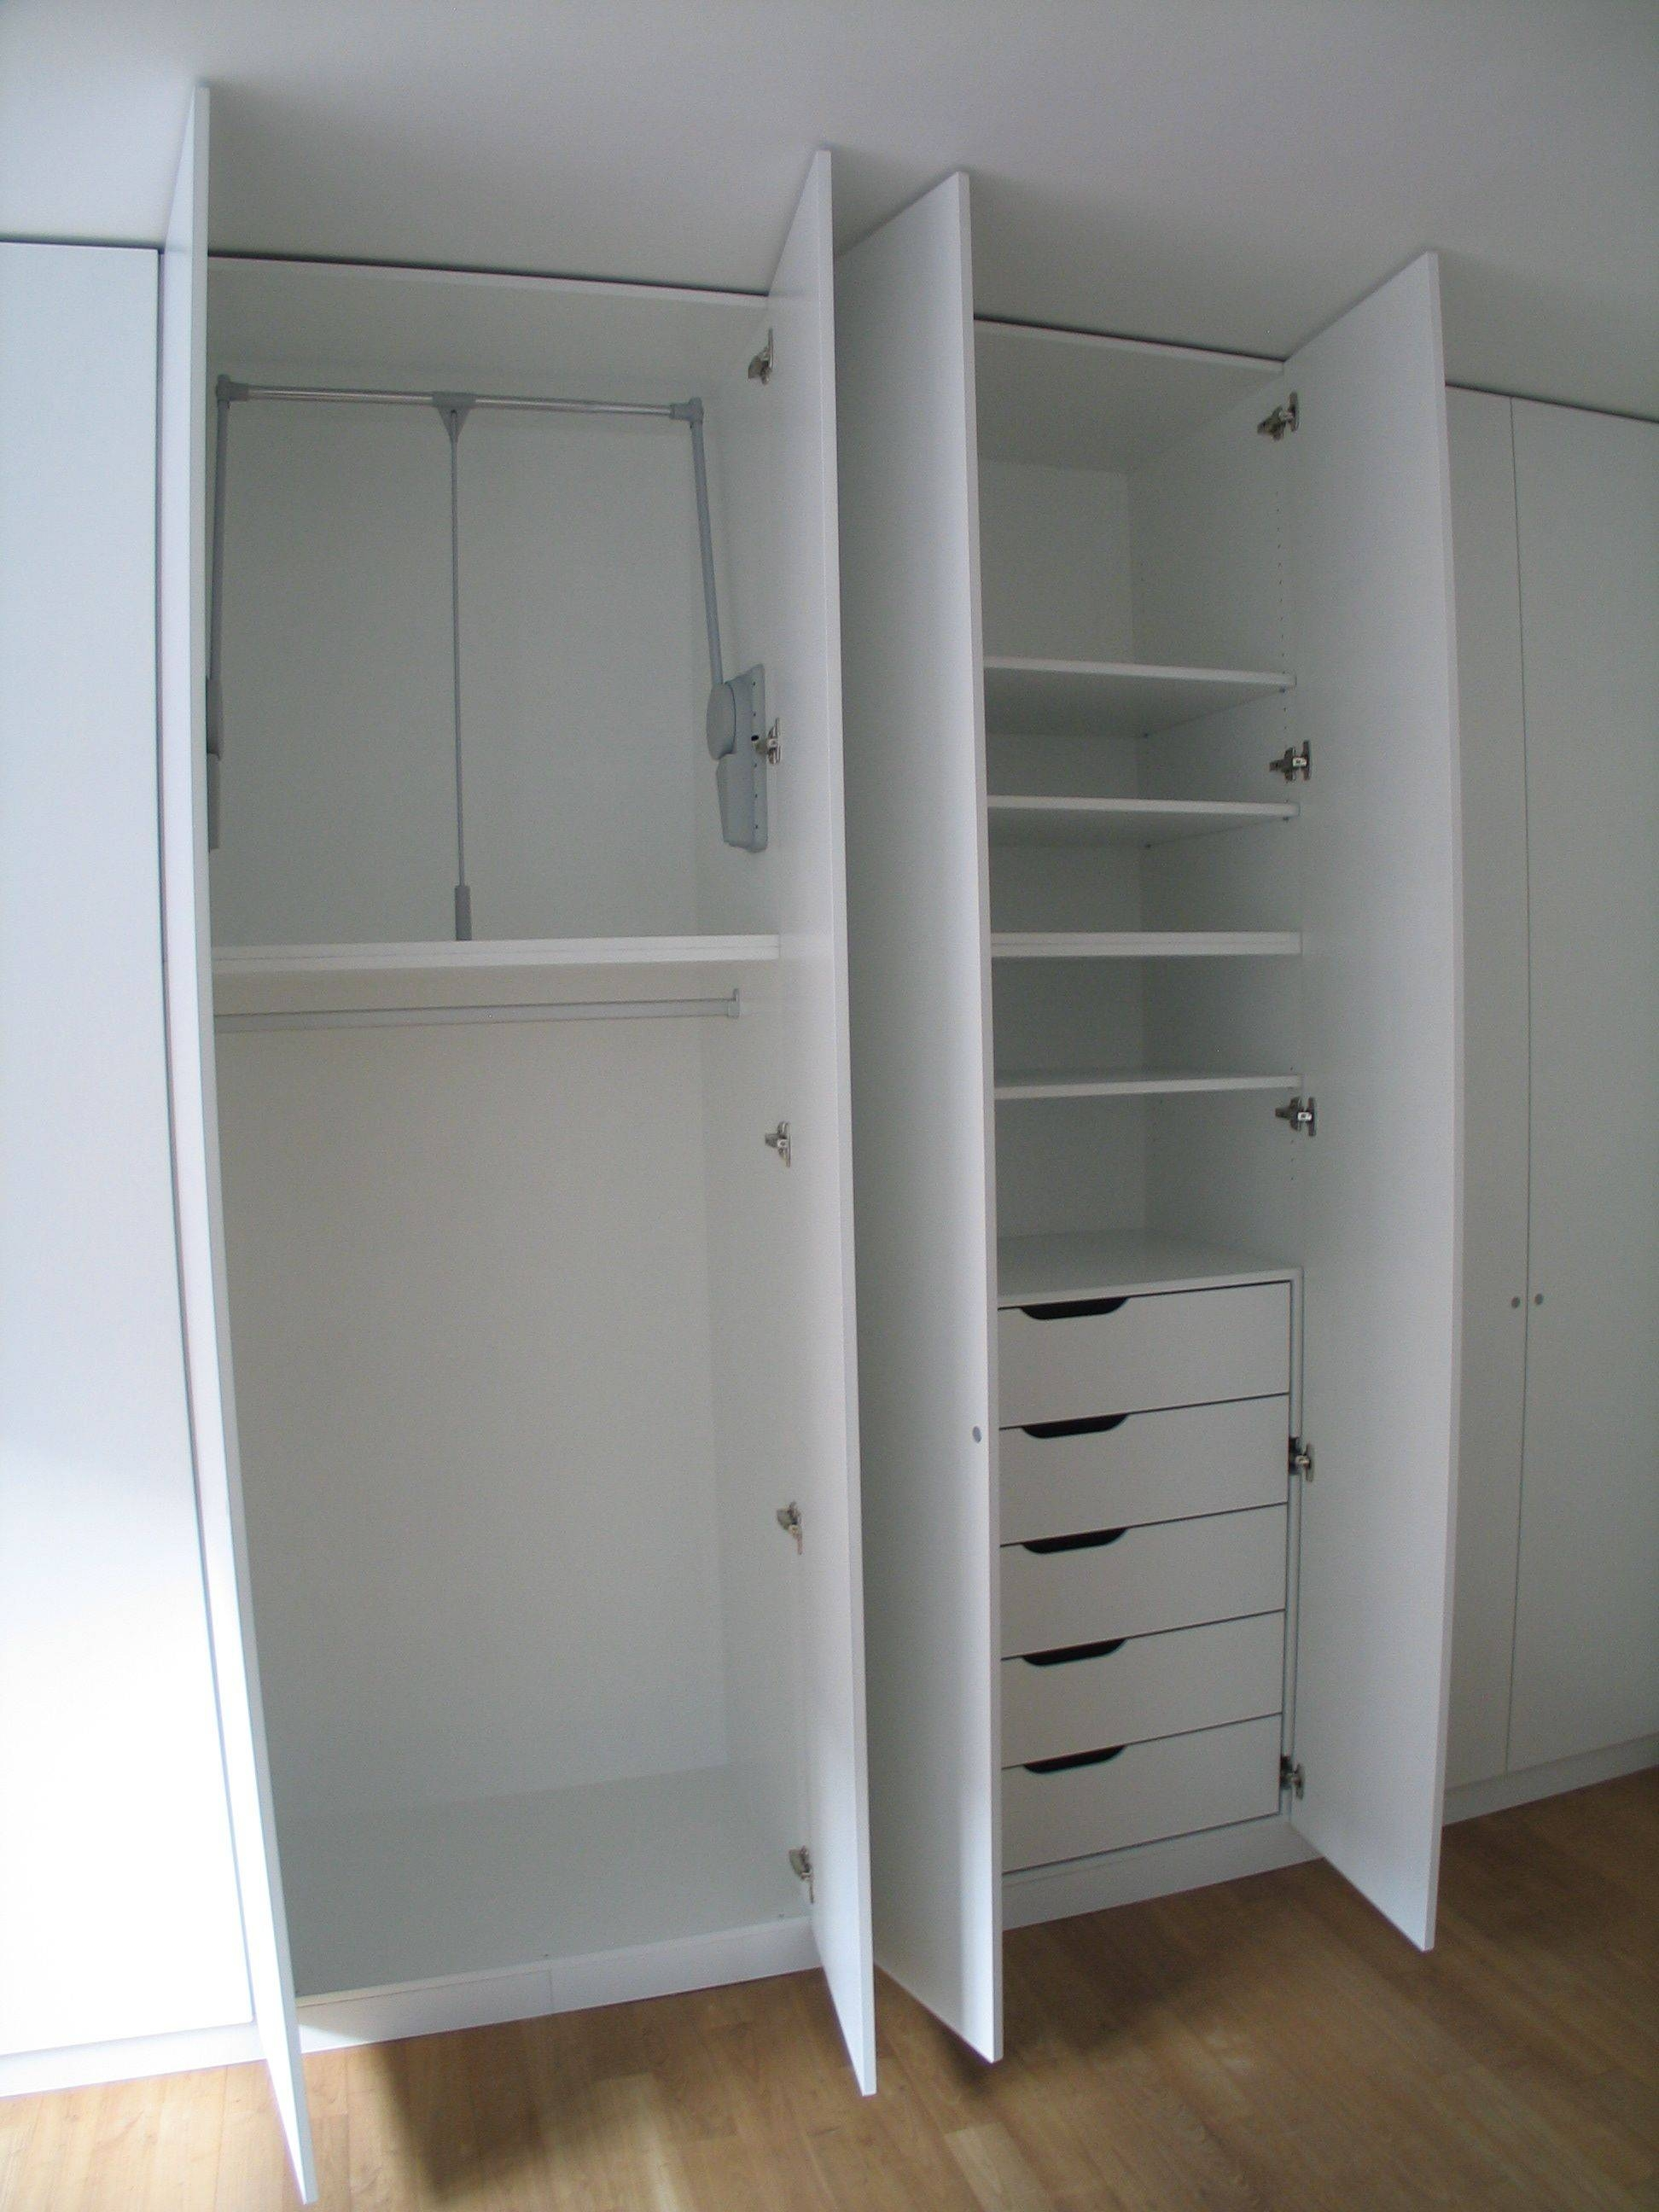 High White Wooden Wardrobe With Shelves Also Five Drawers Combined intended for Double Wardrobe With Drawers And Shelves (Image 20 of 30)